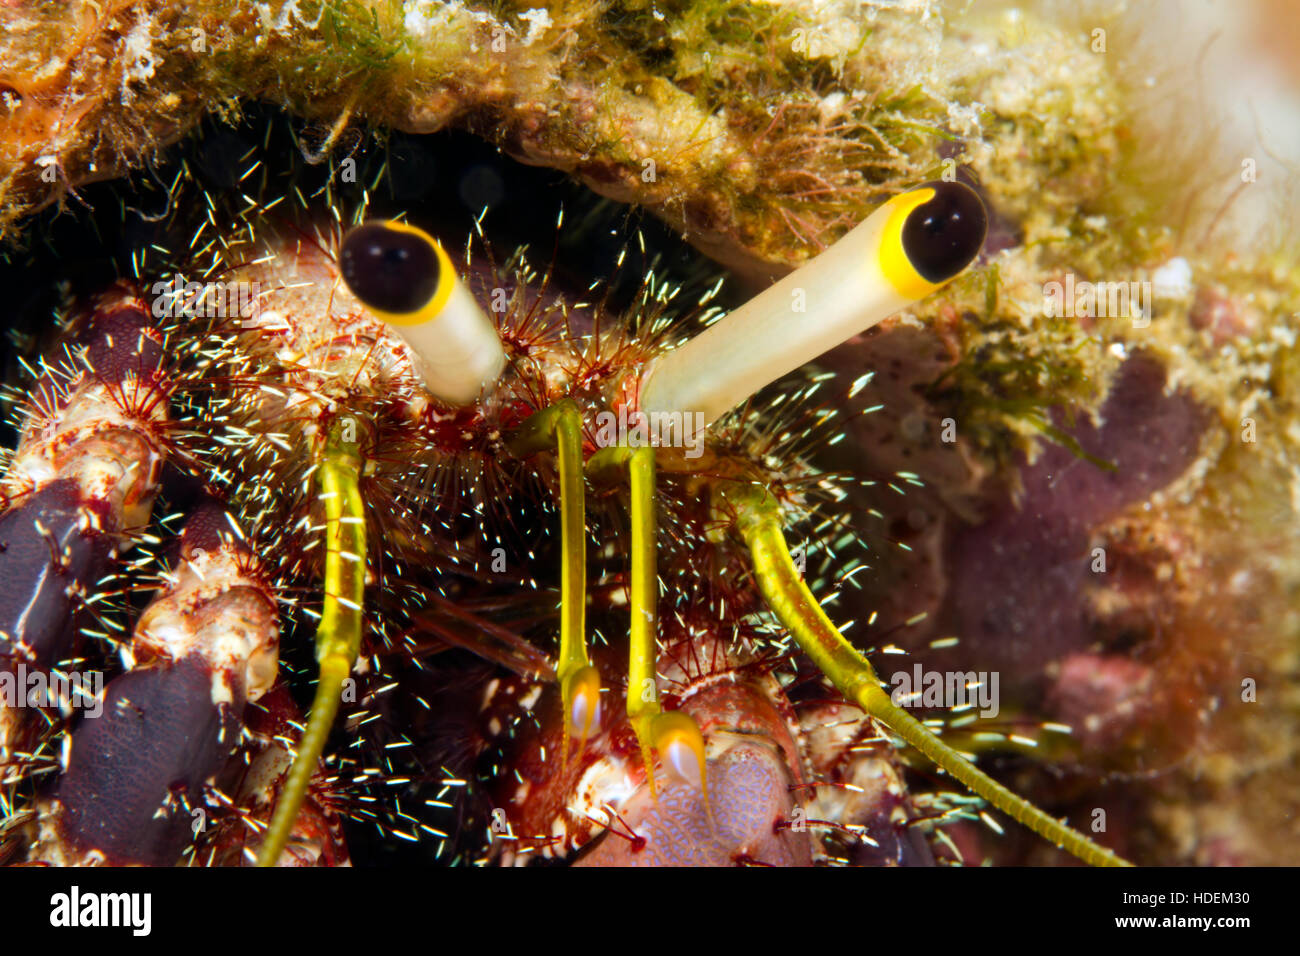 UNderwater macro photography. HErmit crab eyes. - Stock Image